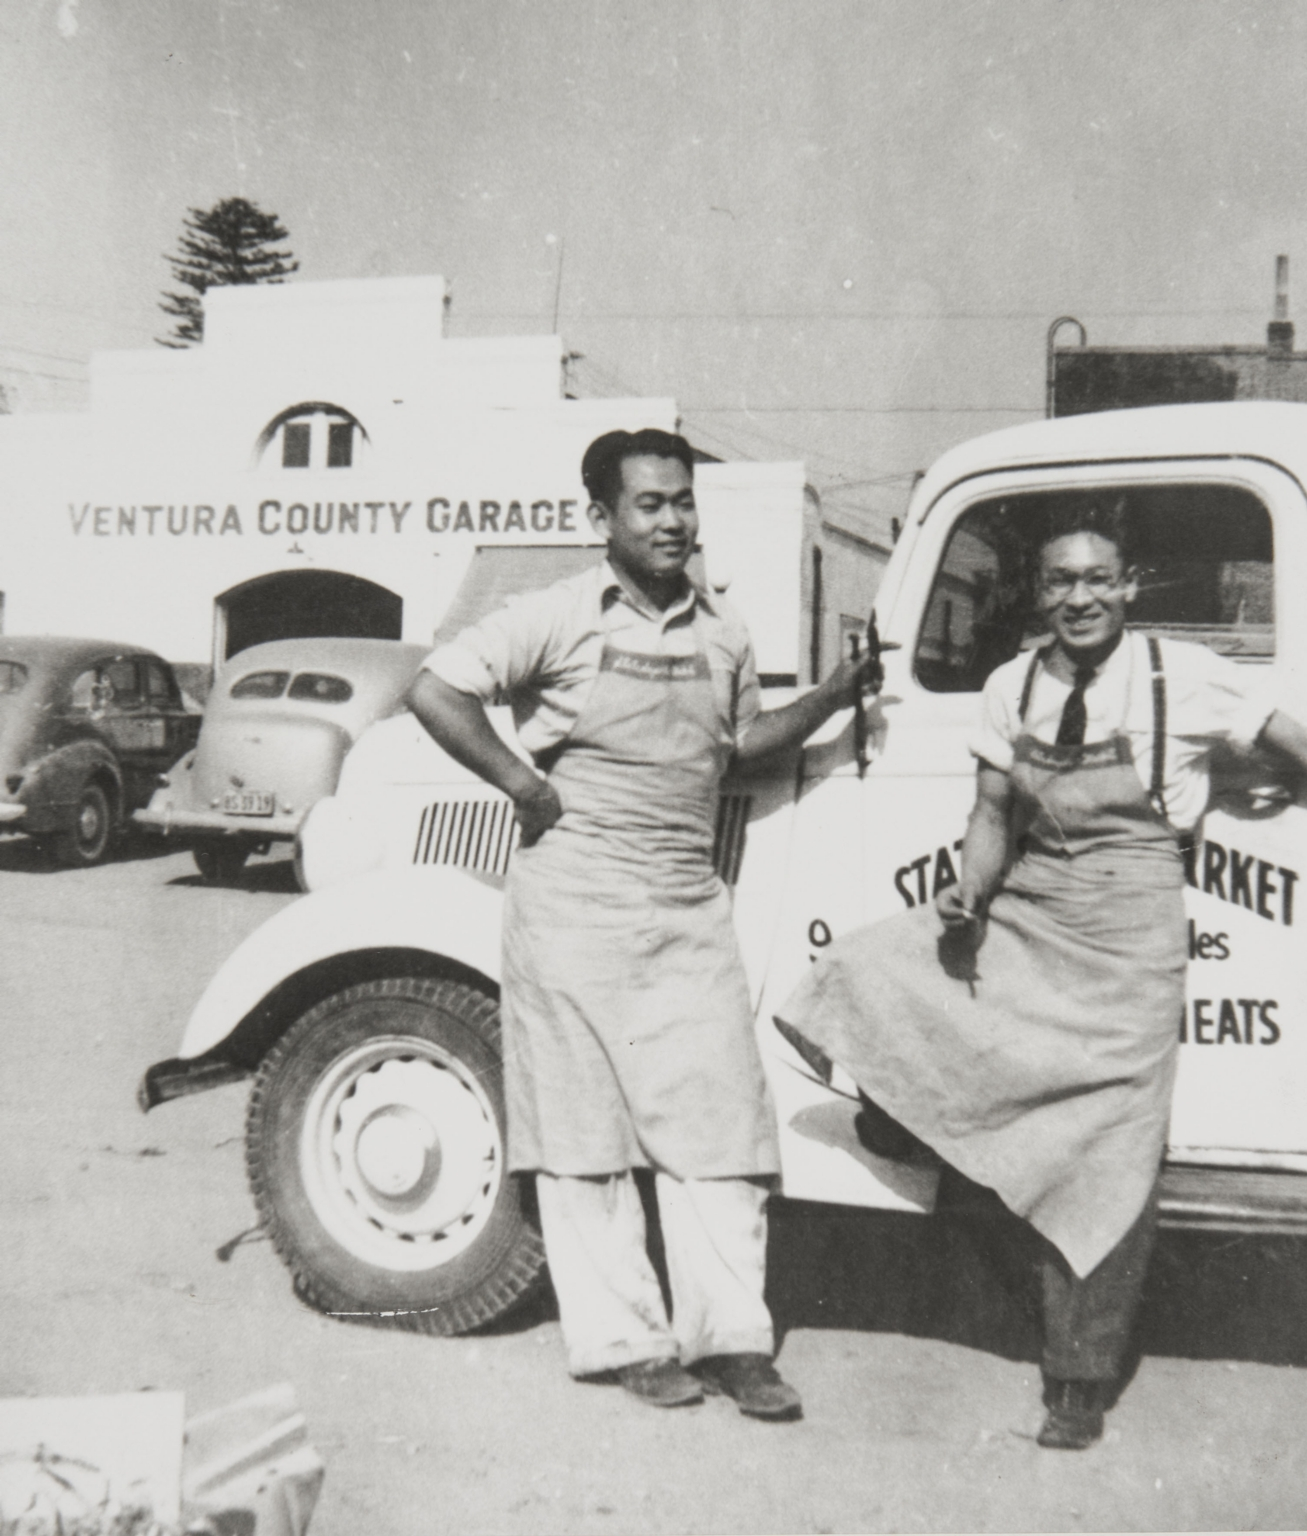 Roy Esaki with fellow worker on after school job at State Super Market, Main and Palm Streets, Ventura : 1938.